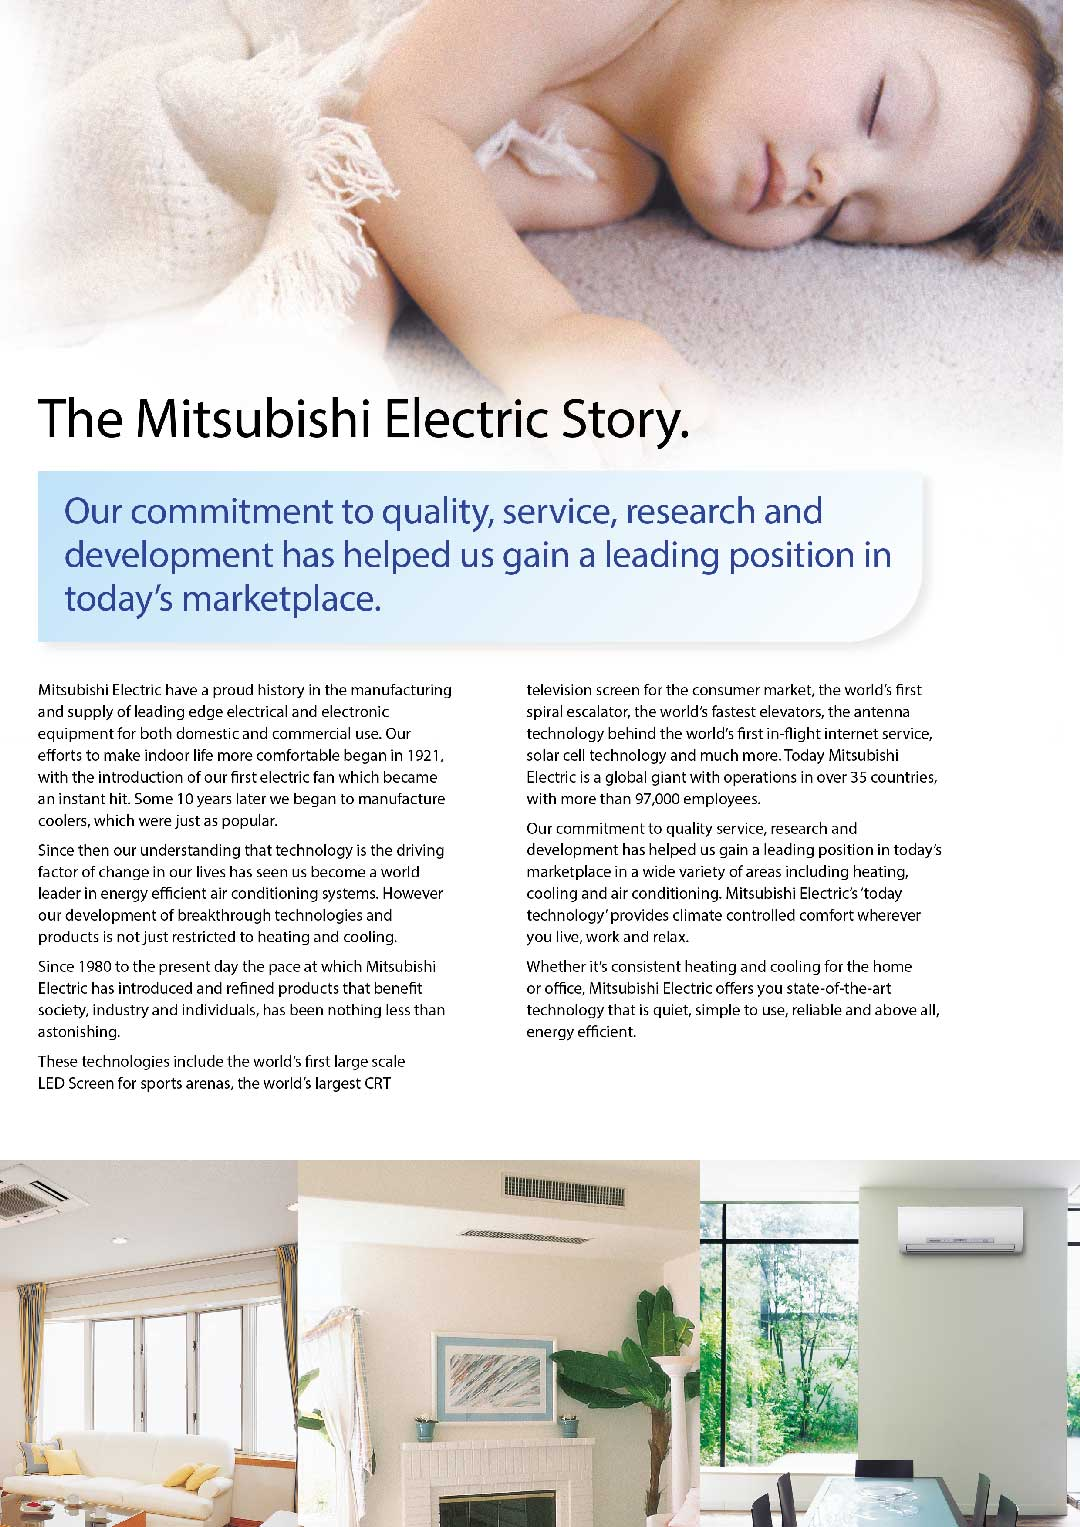 Mitsubishi-Air-Conditioning-Systems-5